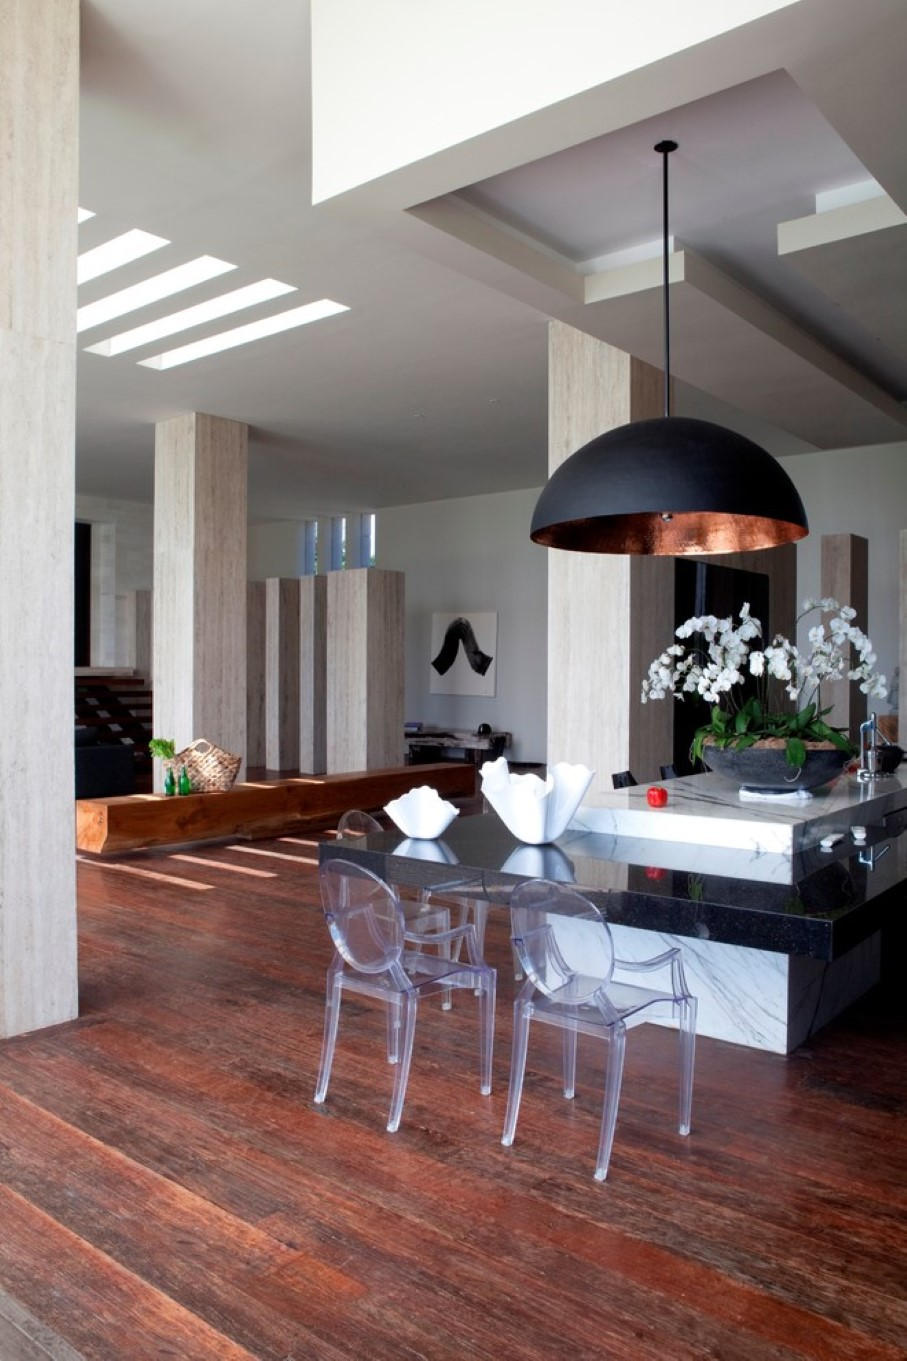 Hanging Lights Over Island Kitchen 20 Examples Of Copper Pendant Lighting For Your Home